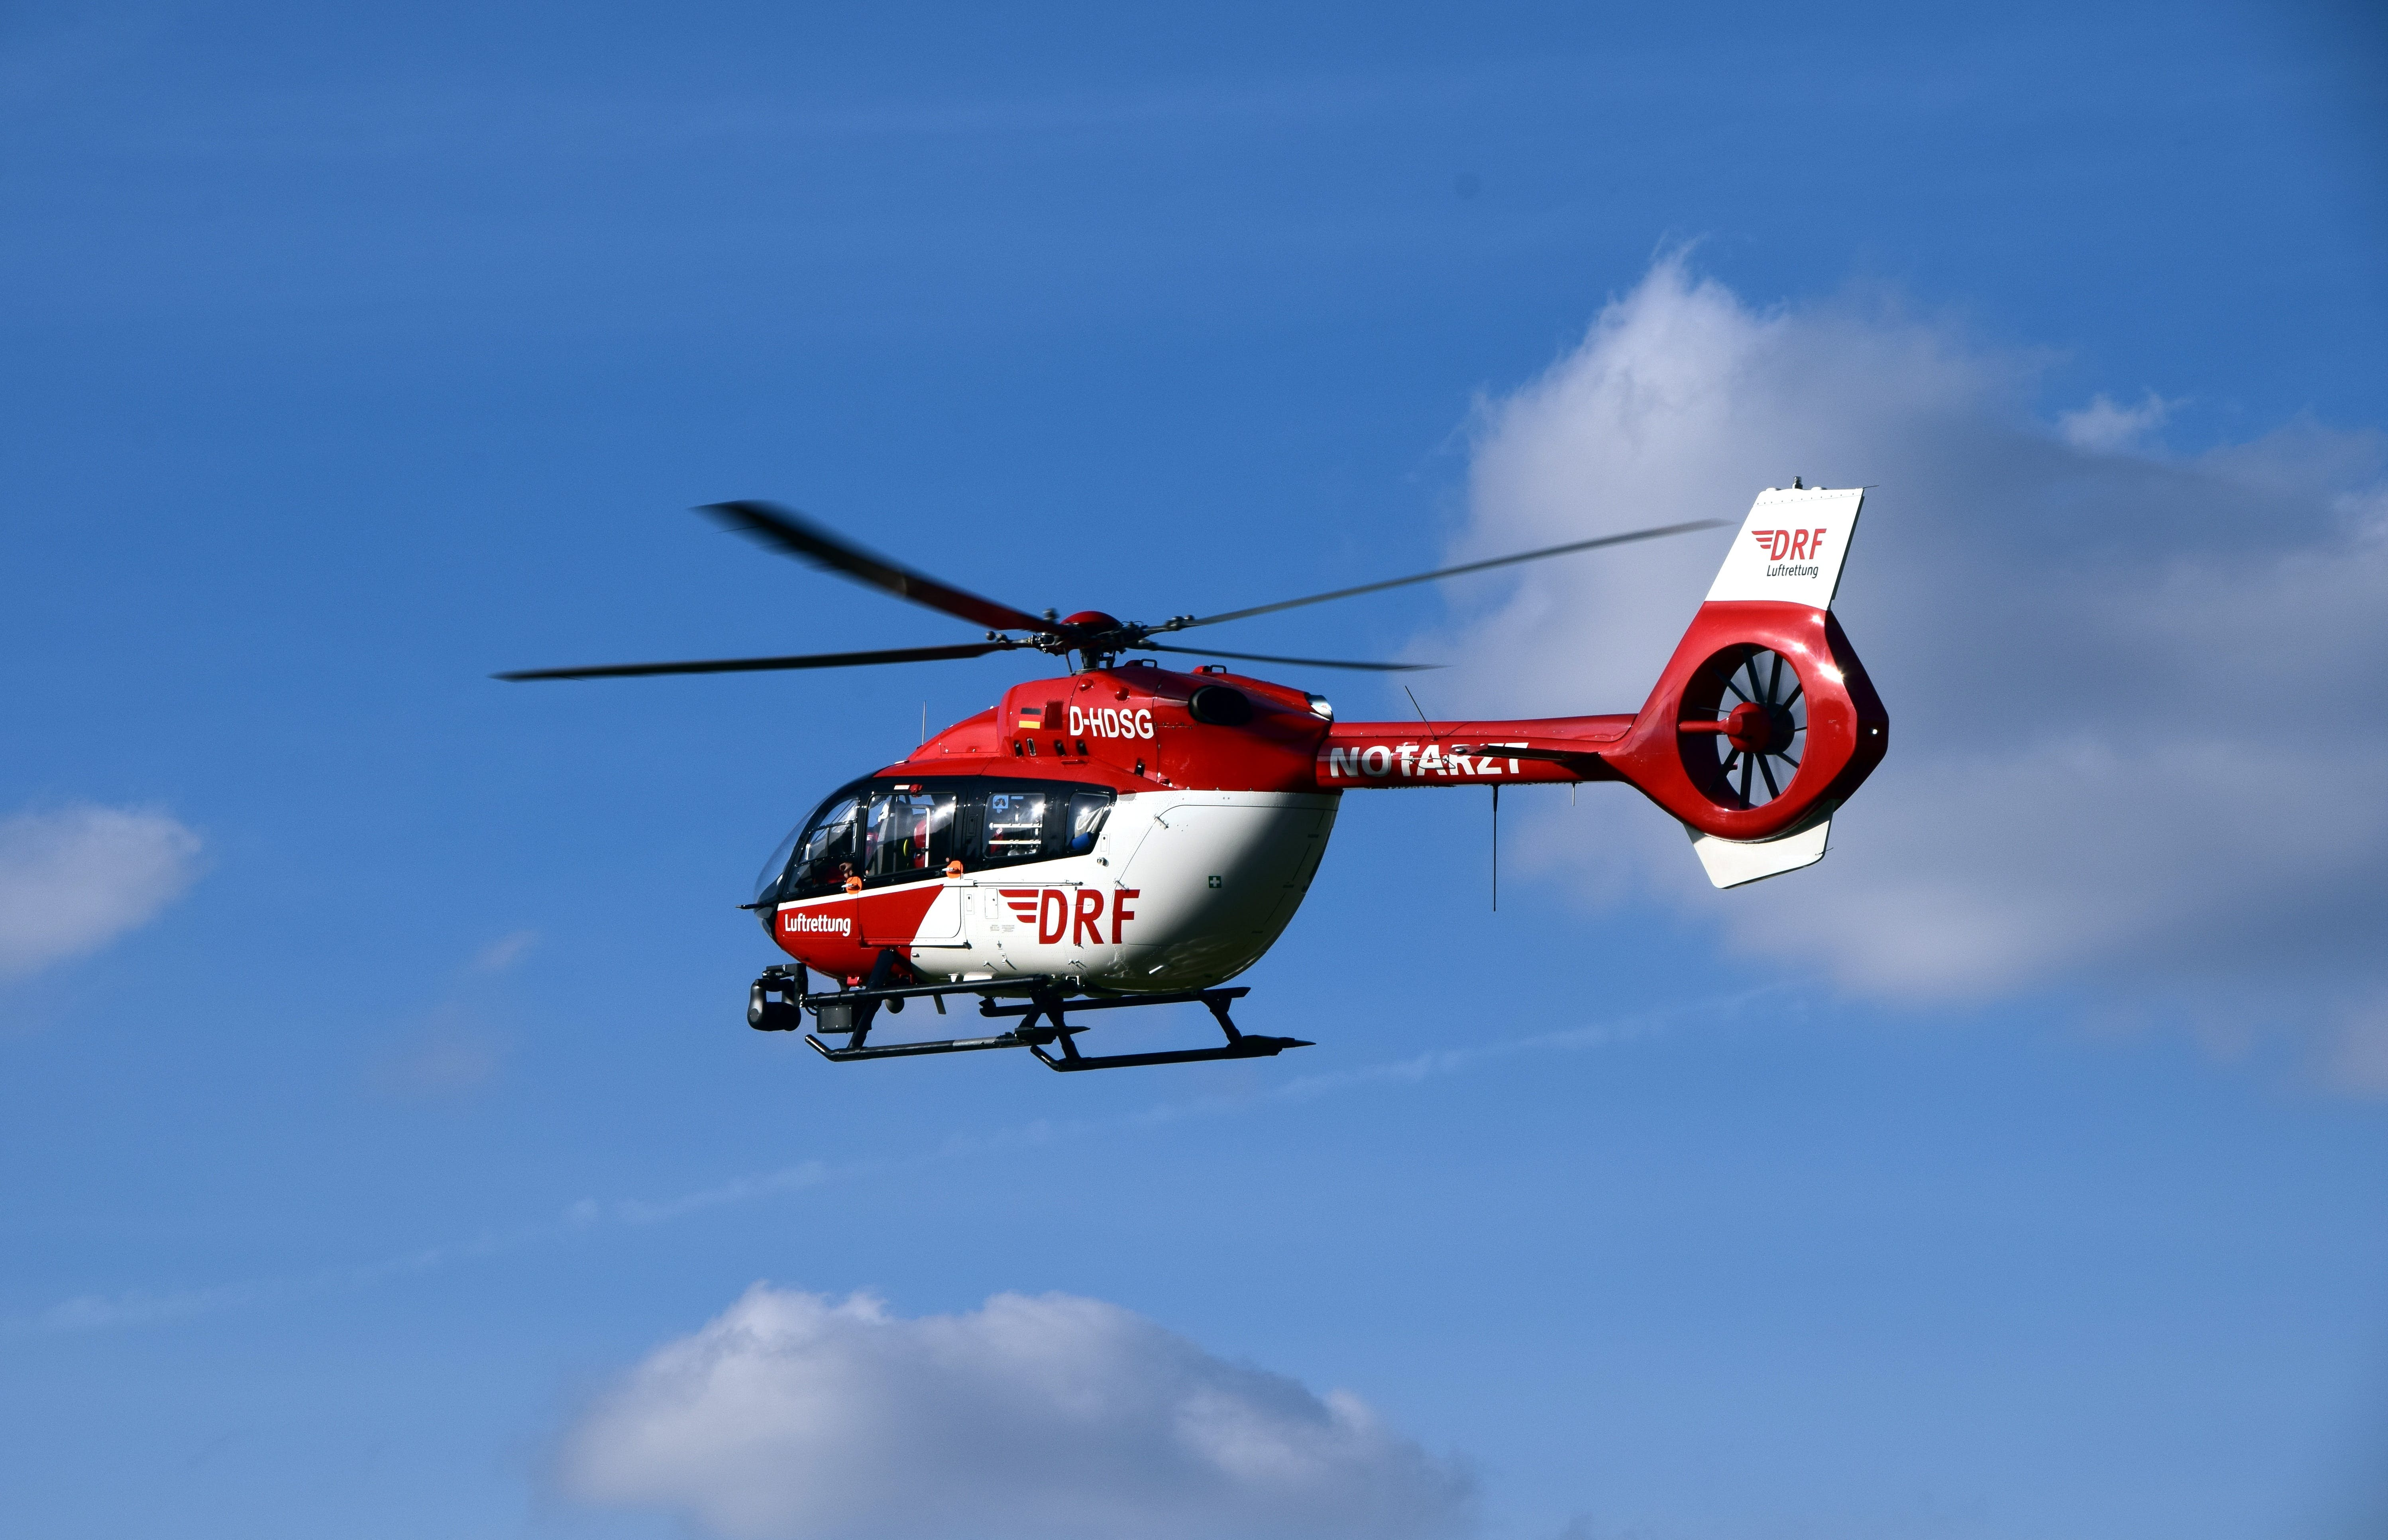 Free stock photo of sky, red, blue, helicopter